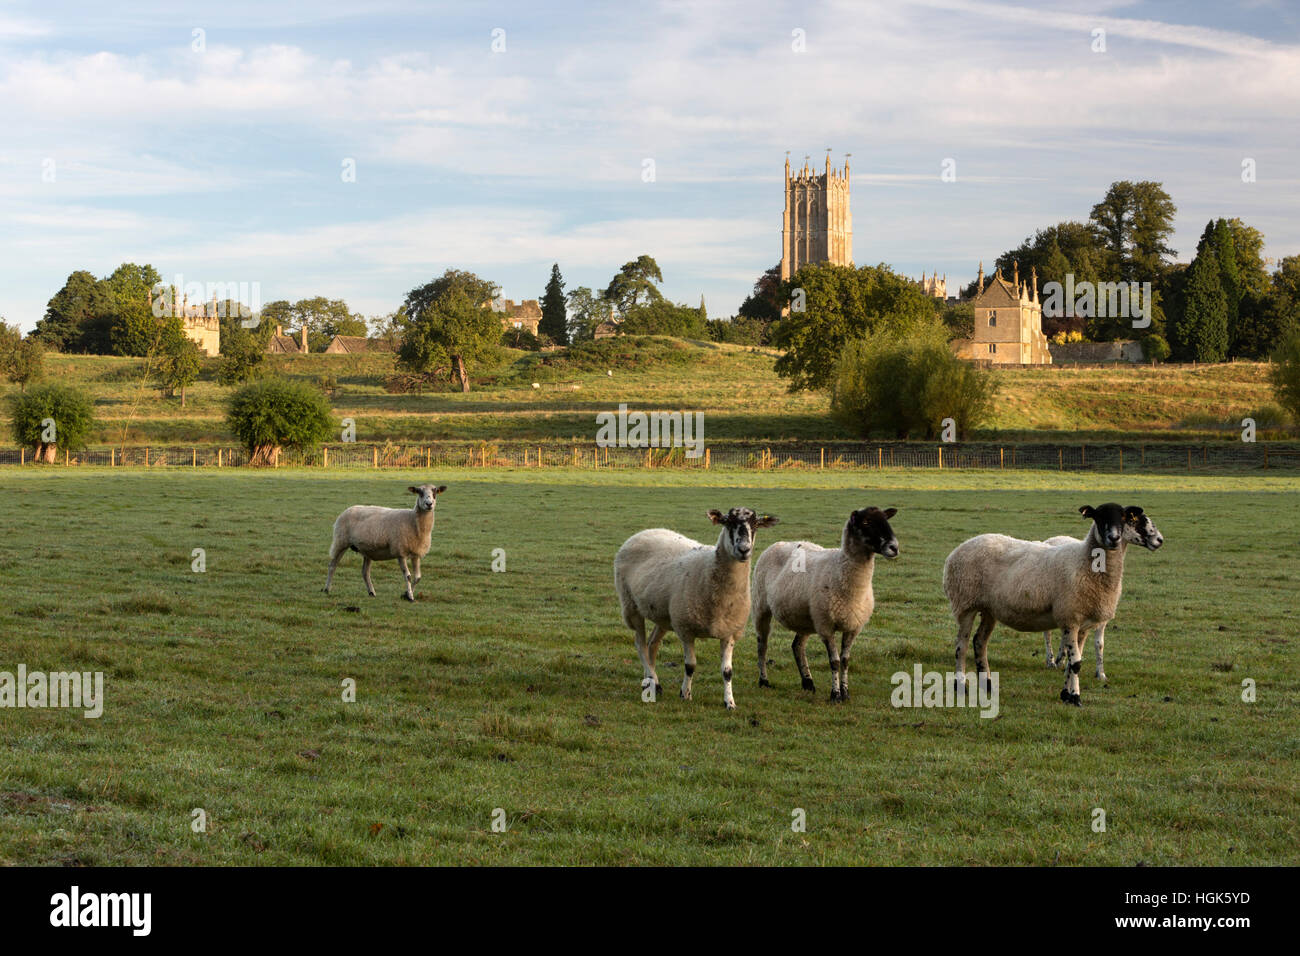 St James church and Campden House banqueting houses, Chipping Campden, Cotswolds, Gloucestershire, England, United - Stock Image